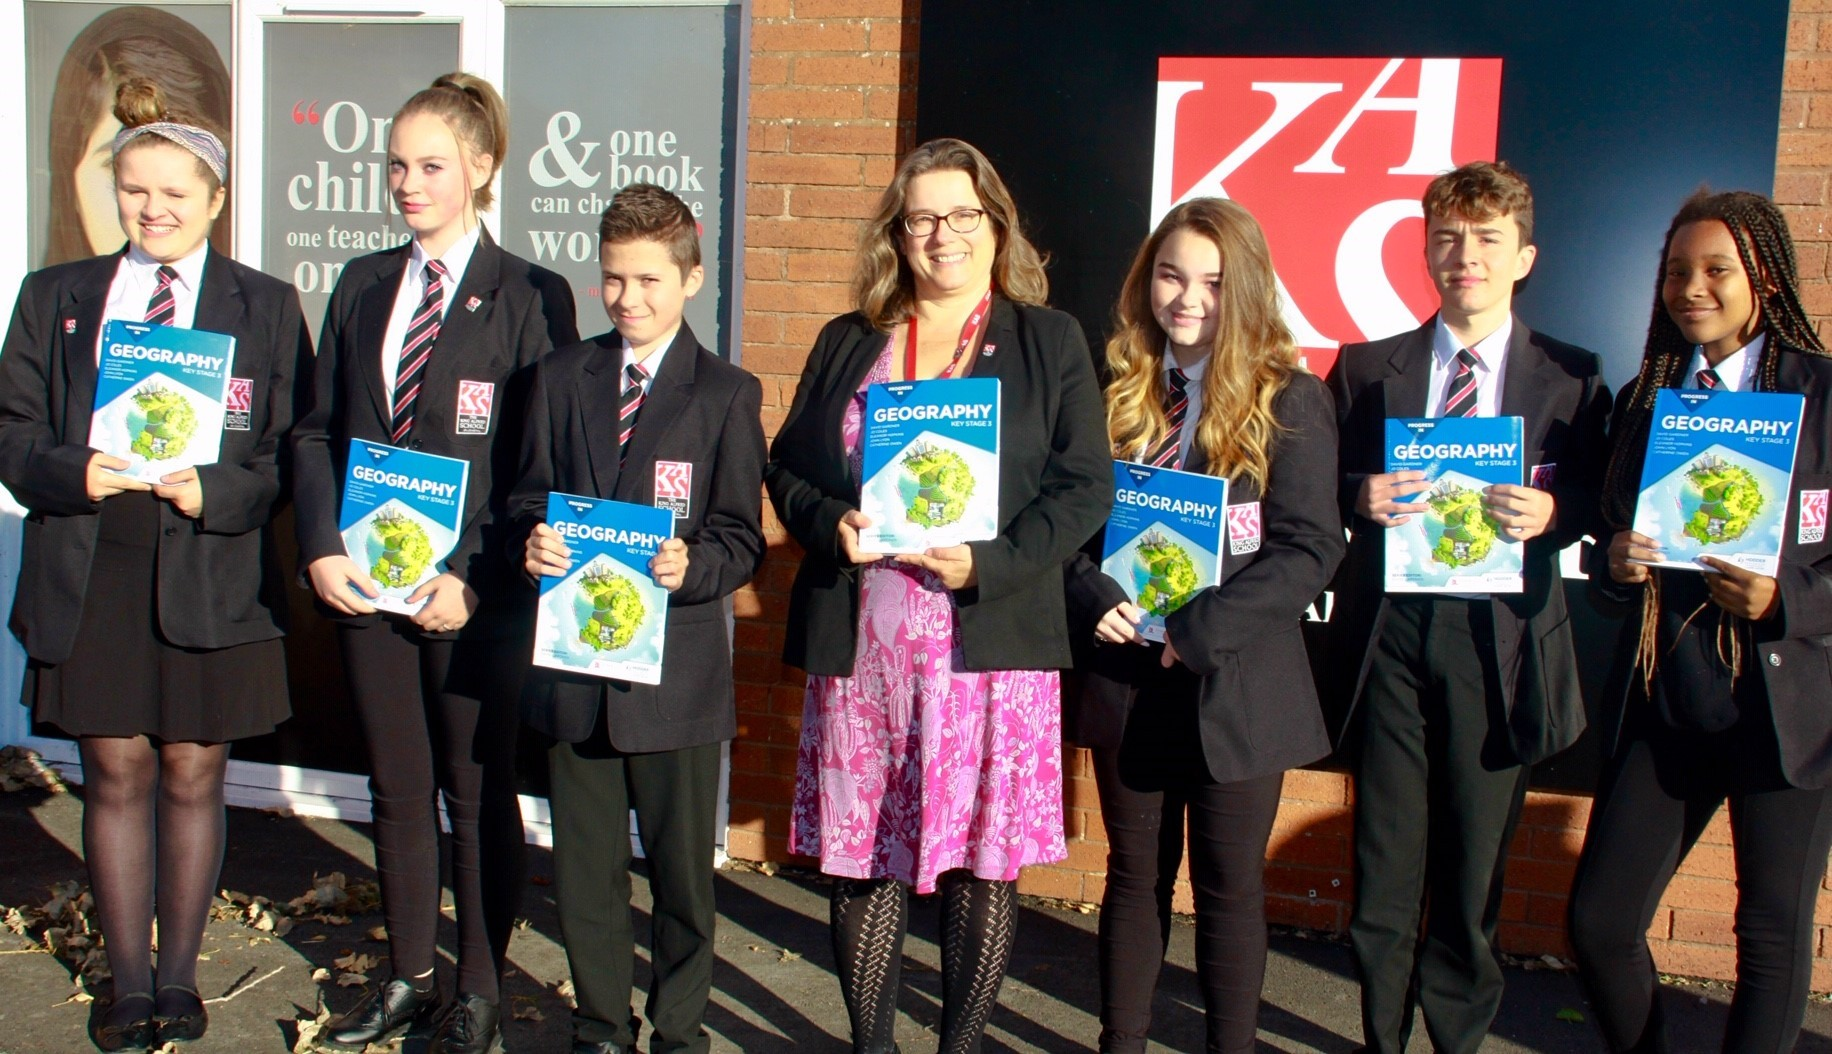 CELEBRATING: Catherine Owen, head of Geography at The King Alfred School and her students with her new book